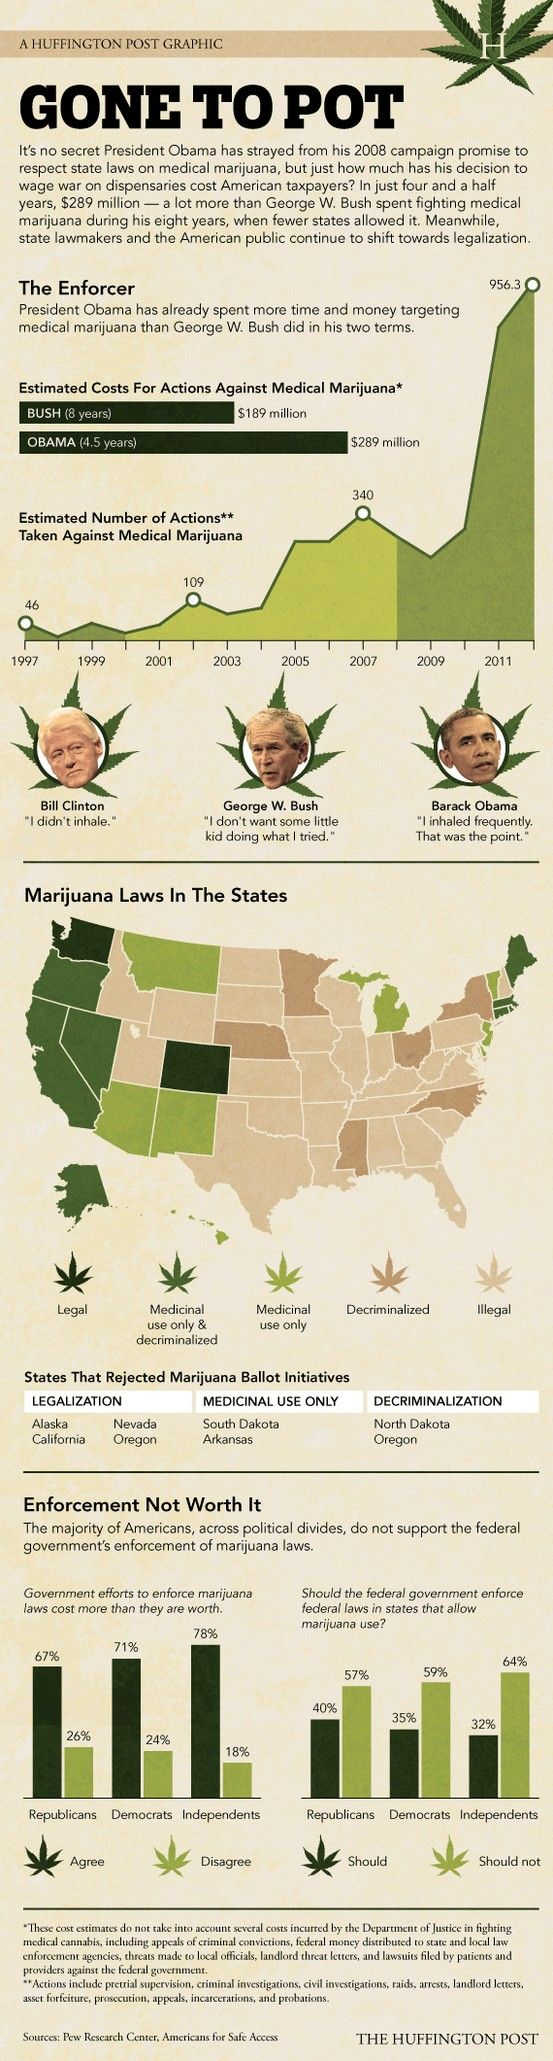 Obama continues to disappoint me re: MMJ and legalization. Why am I surprised...